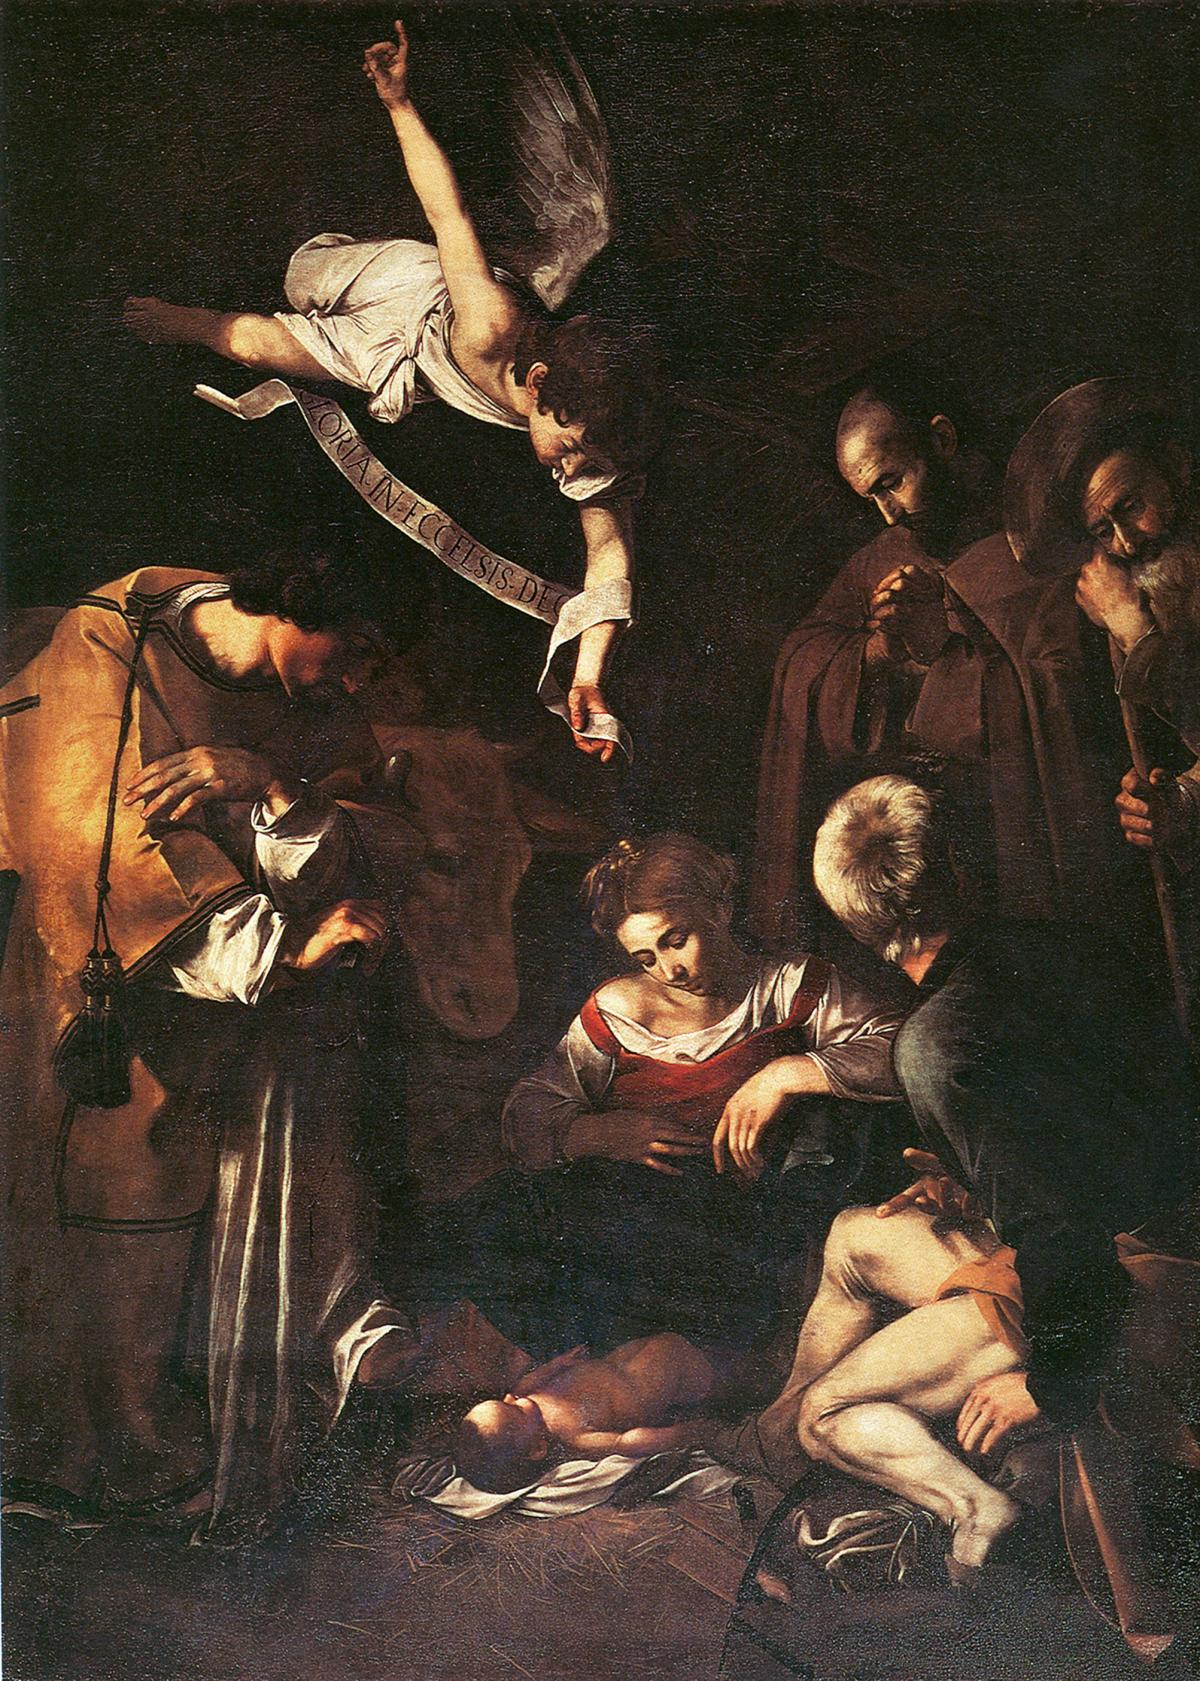 Caravaggio's 1609 painting, Nativity with St. Francis and St. Lawrence, was stolen from a church in Sicily in 1969 and remains missing. The art sleuths are convinced they'll find it.